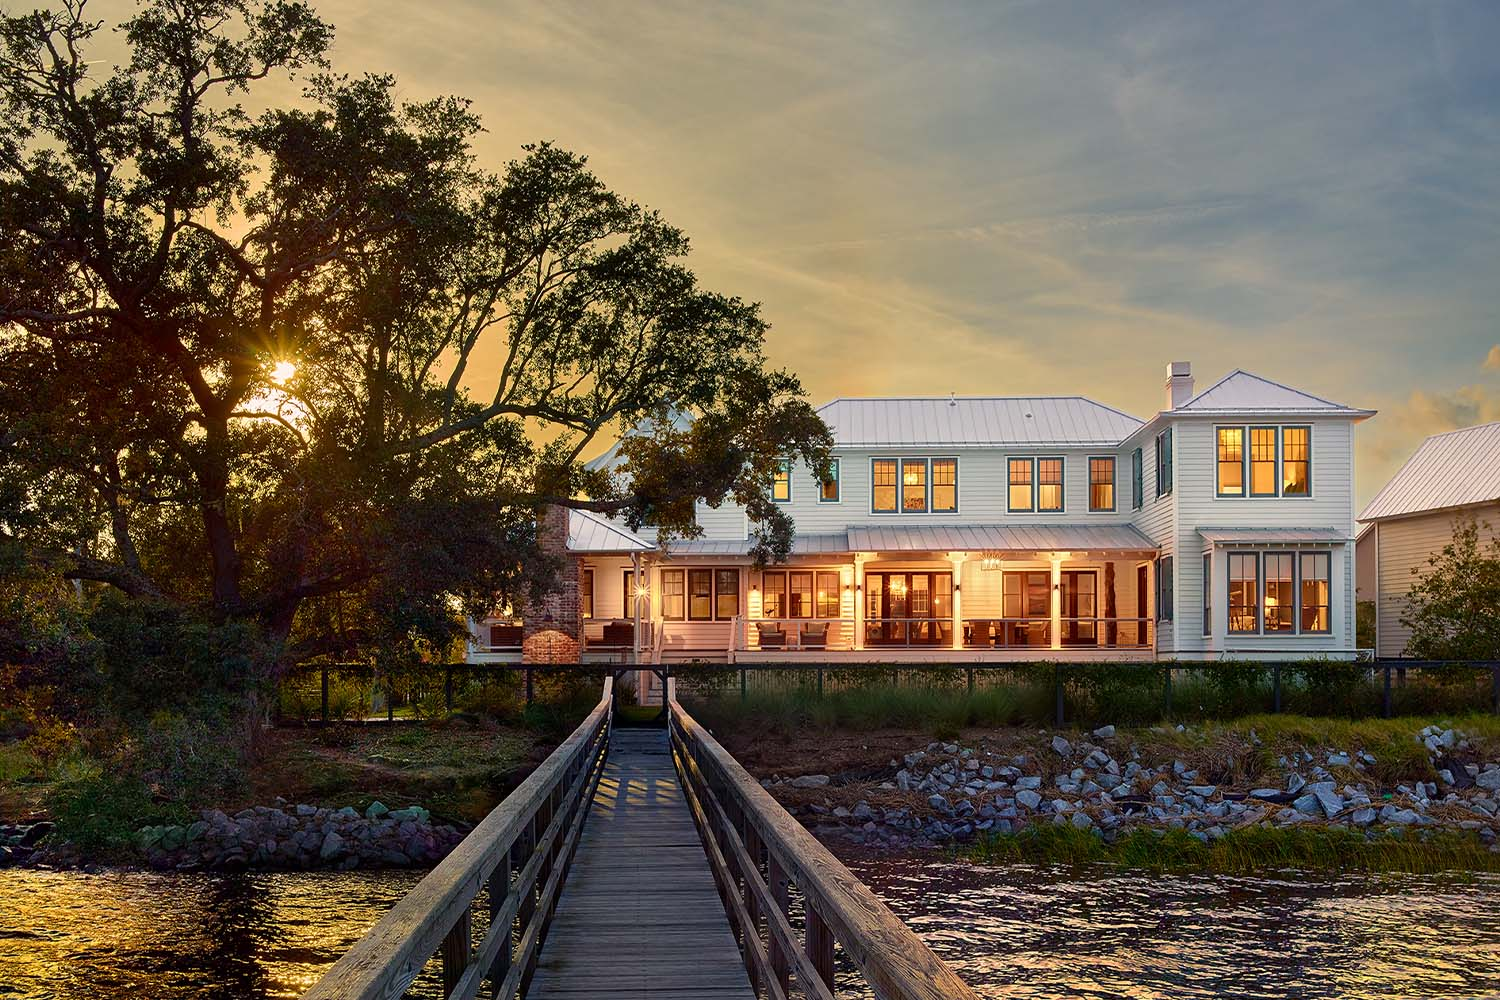 Waterfront on the Wando River